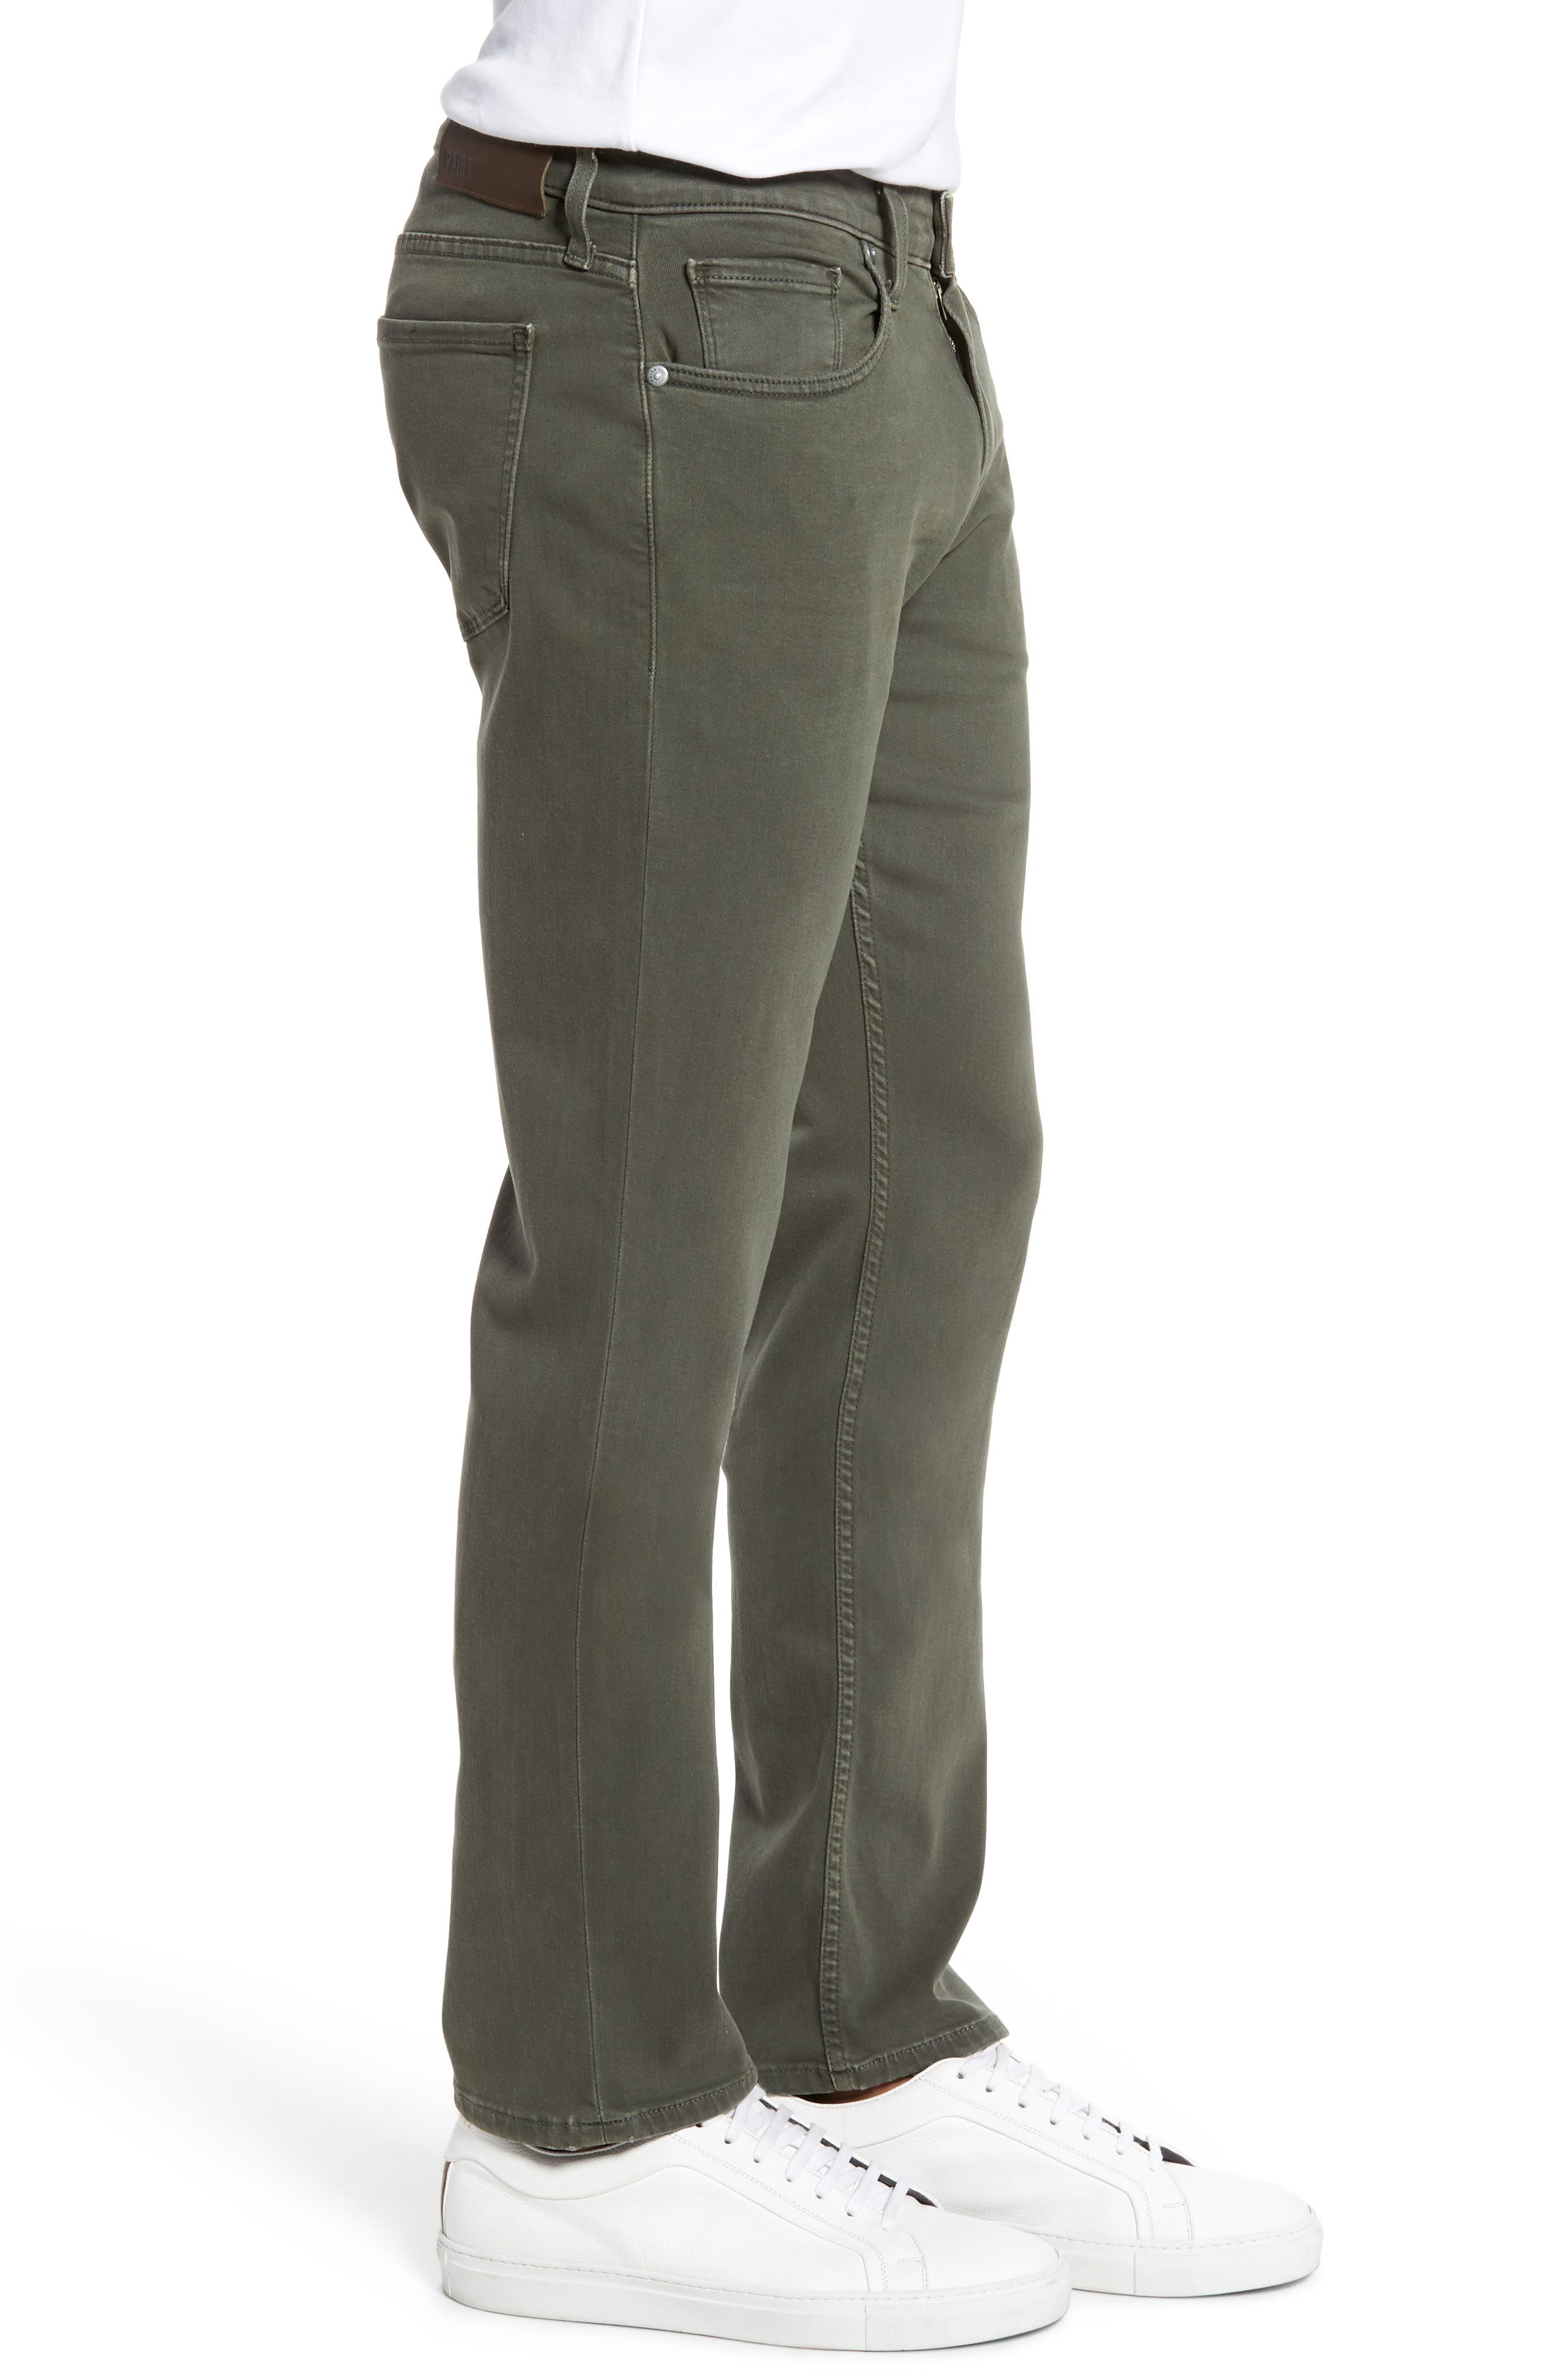 Transcend - Federal Slim Straight Leg Jeans,                             Alternate thumbnail 3, color,                             Vintage Green Fields